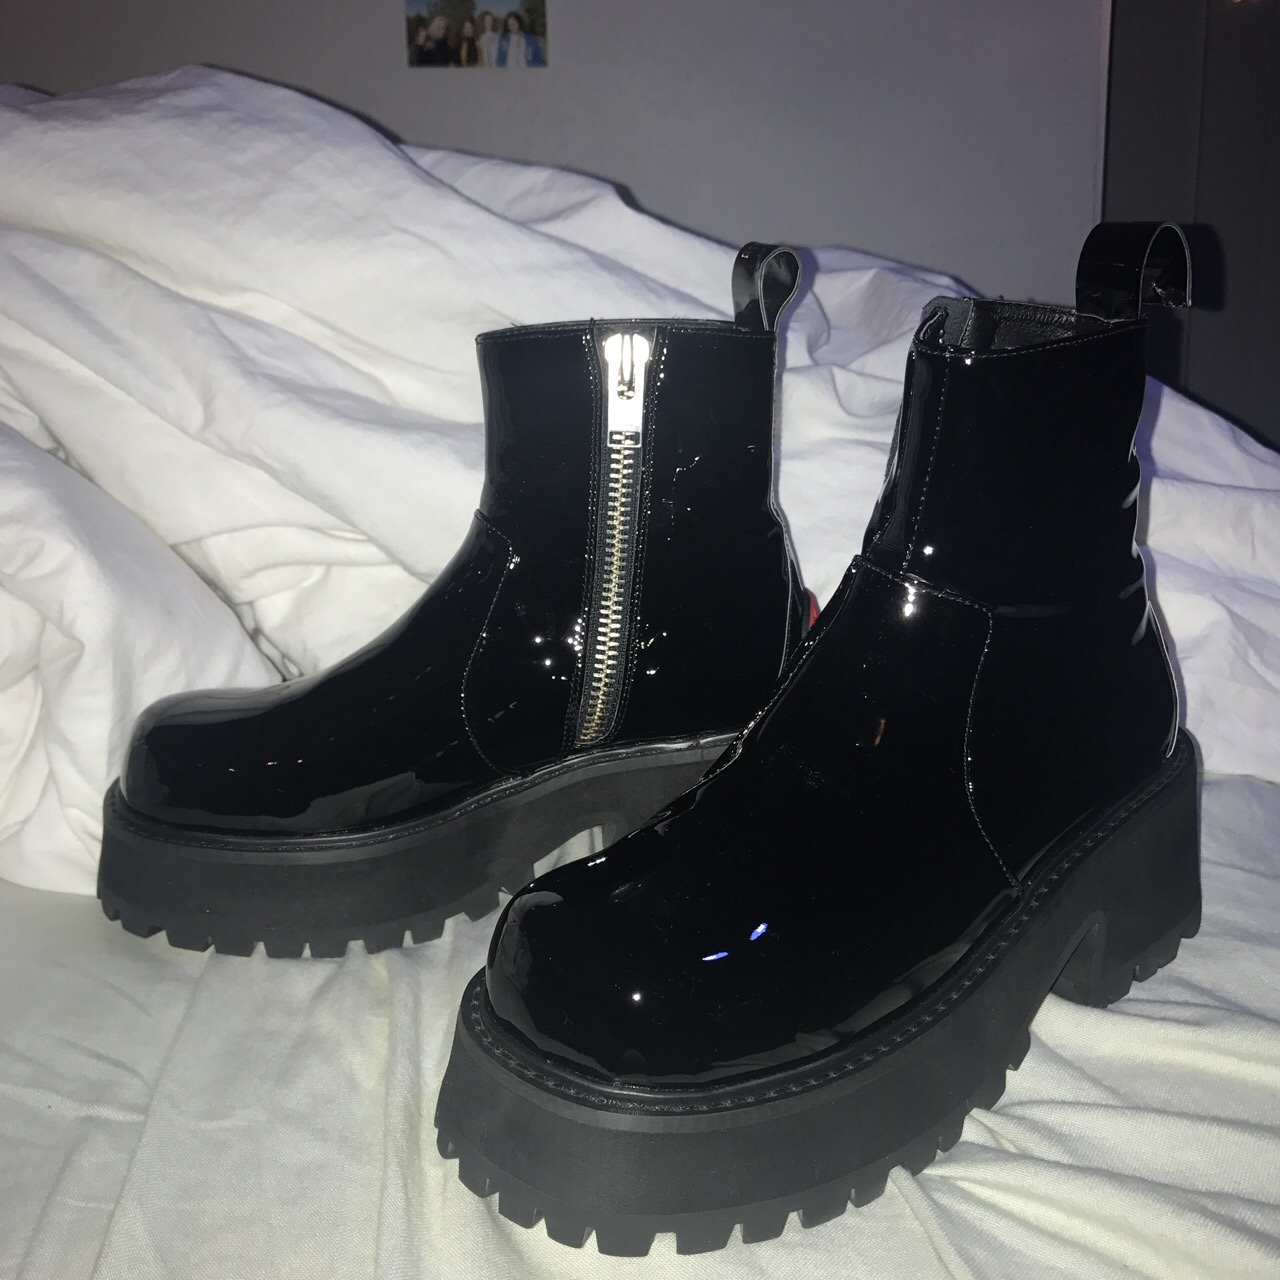 Unif Dada Boots size 8. I usually wear